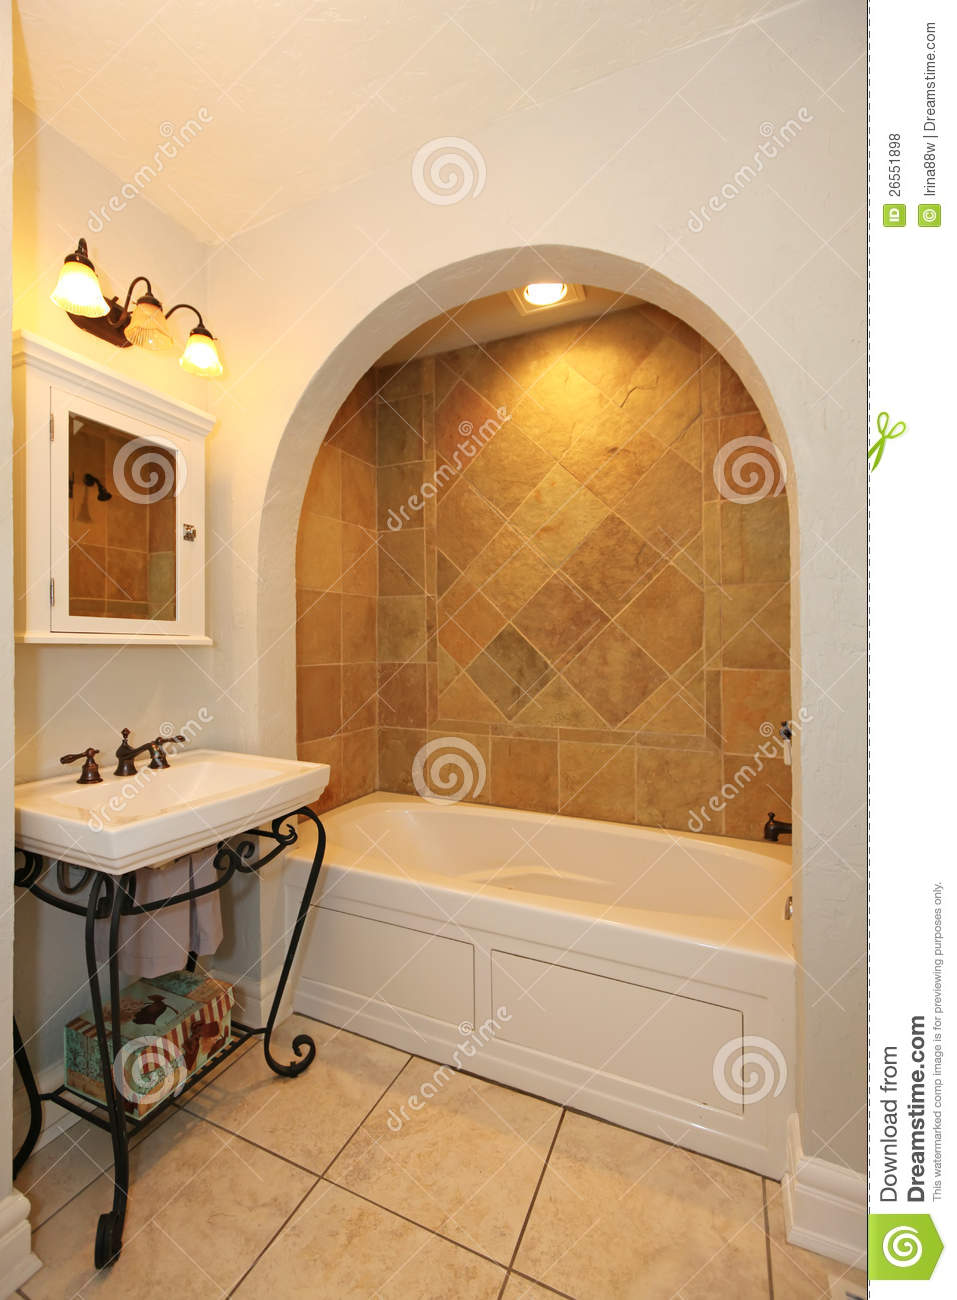 Tinas De Baño De Piedra:Tub with Arch